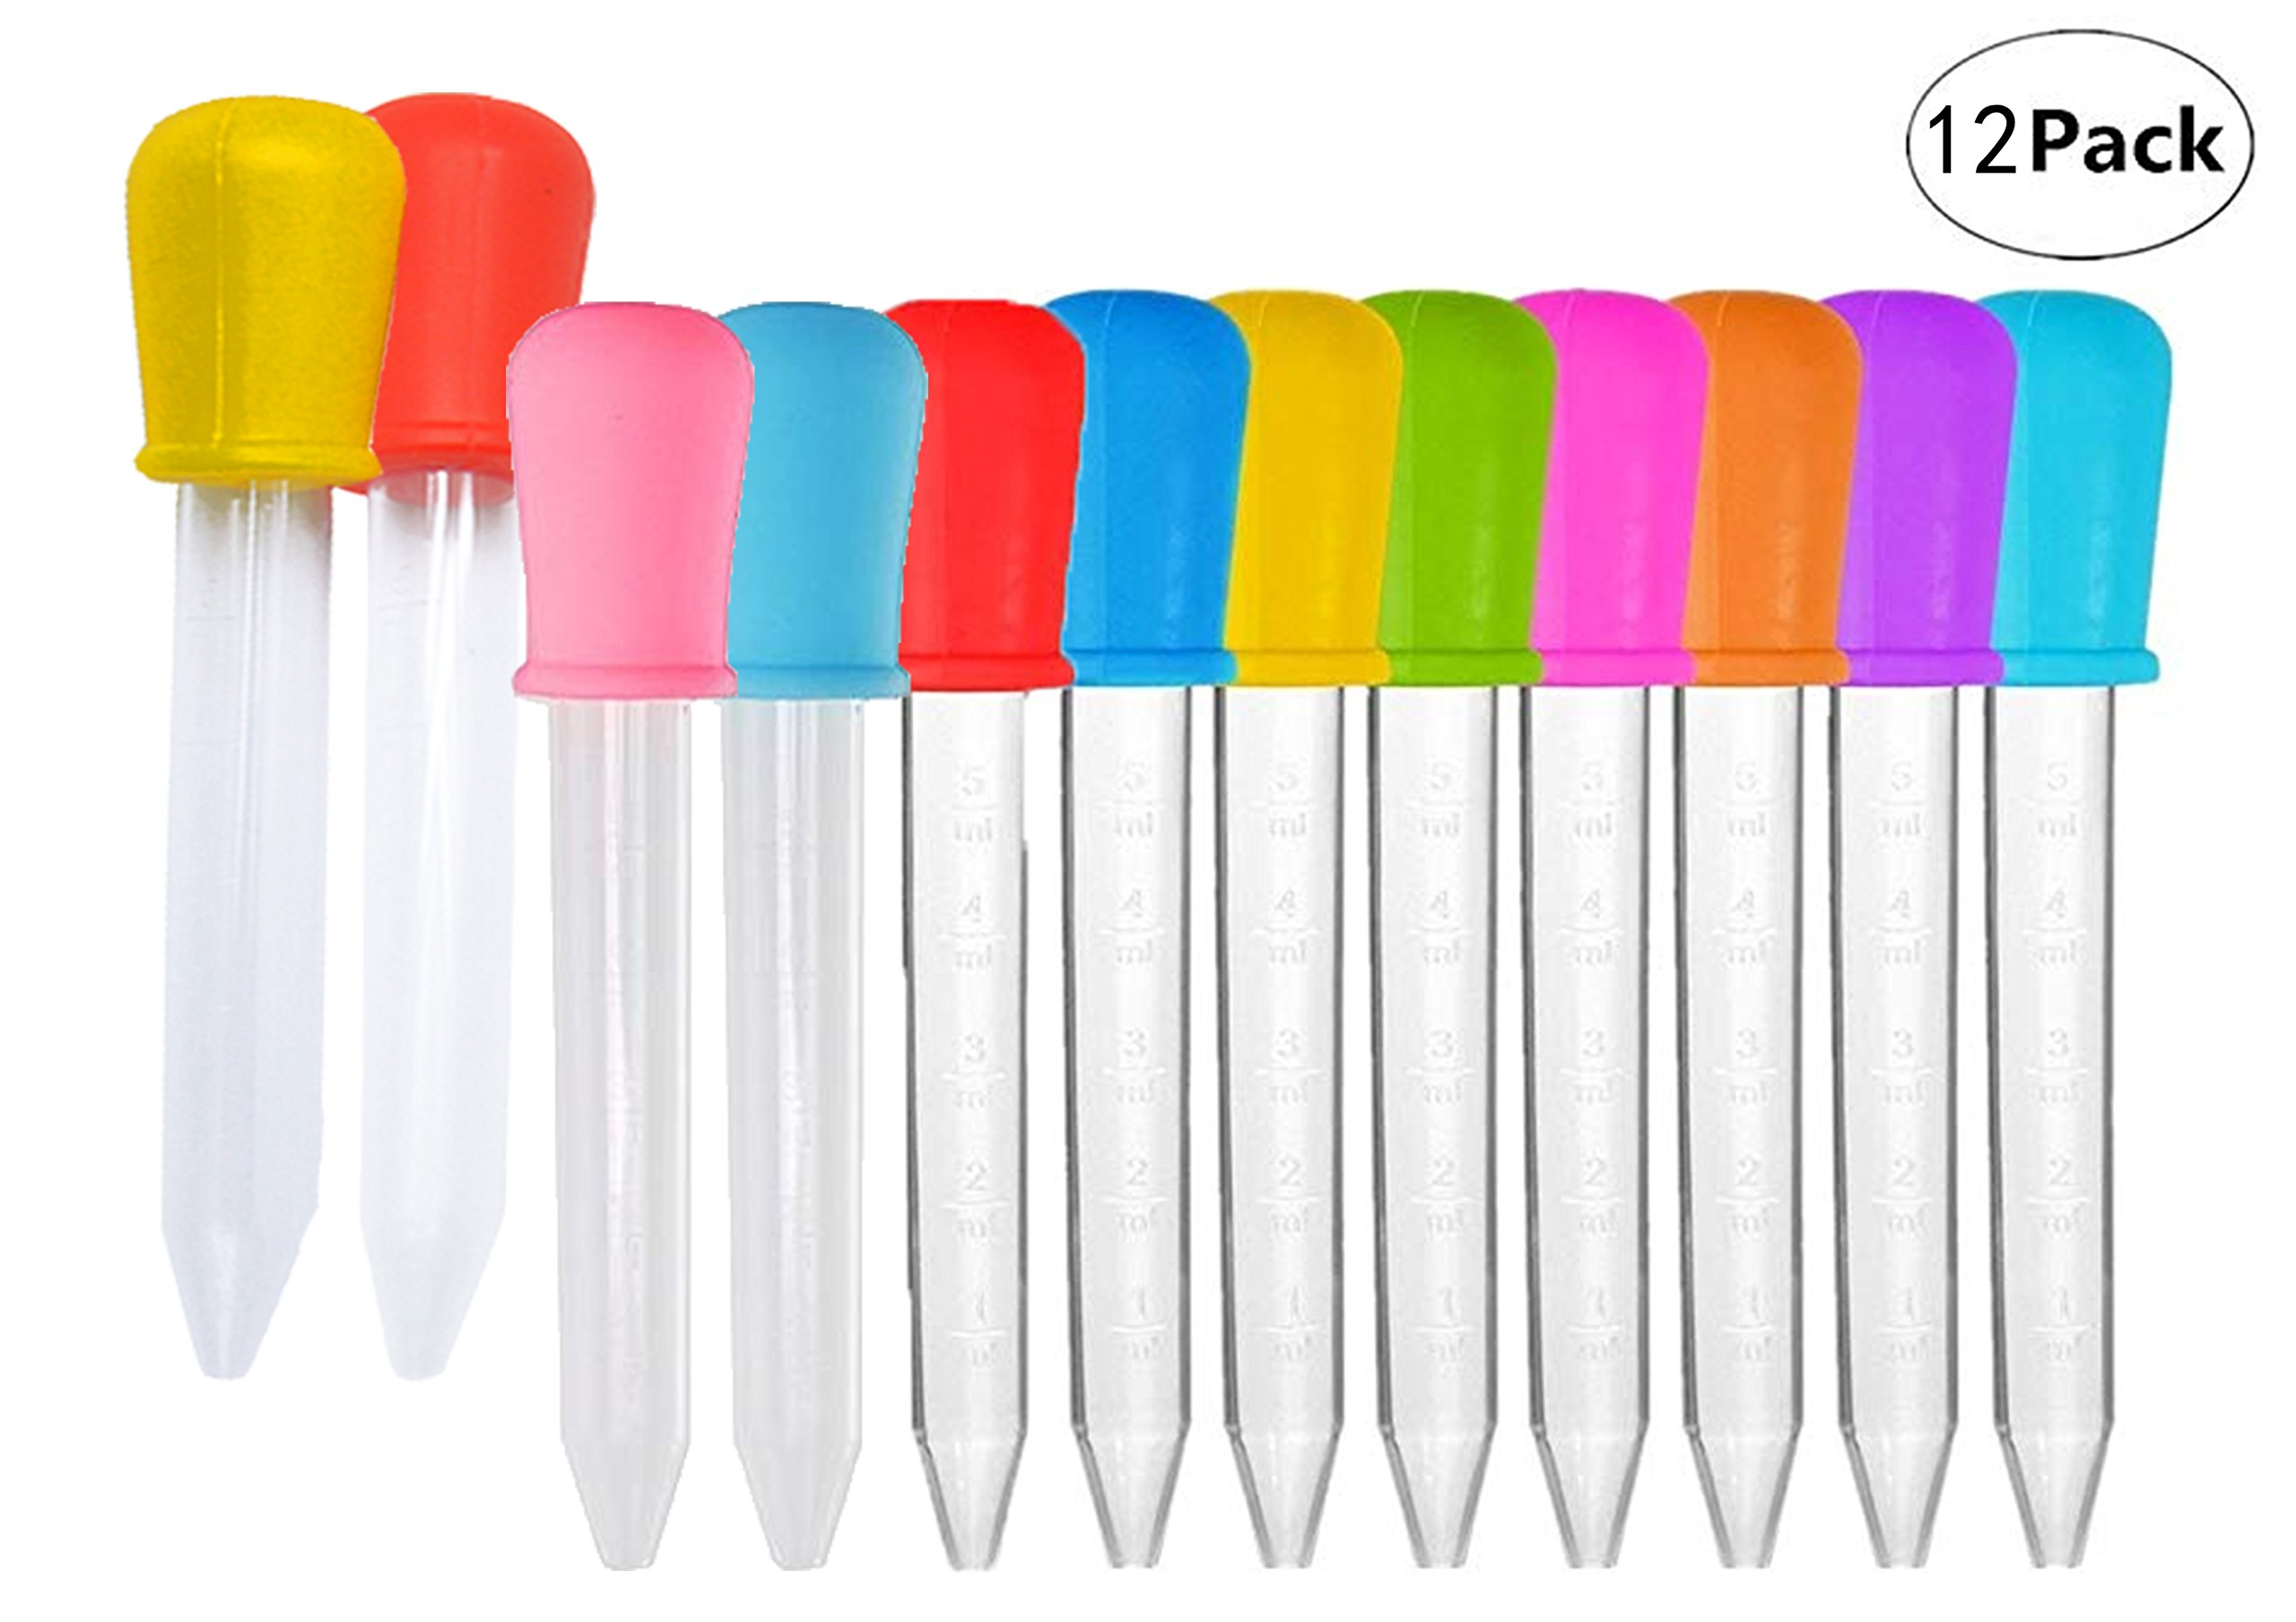 Gorse Liquid Droppers for Kids Silicone and Plastic Pipettes with Bulb Tip 5 ML Eye Dropper for Candy Molds, 8 Colors, 12 Pack